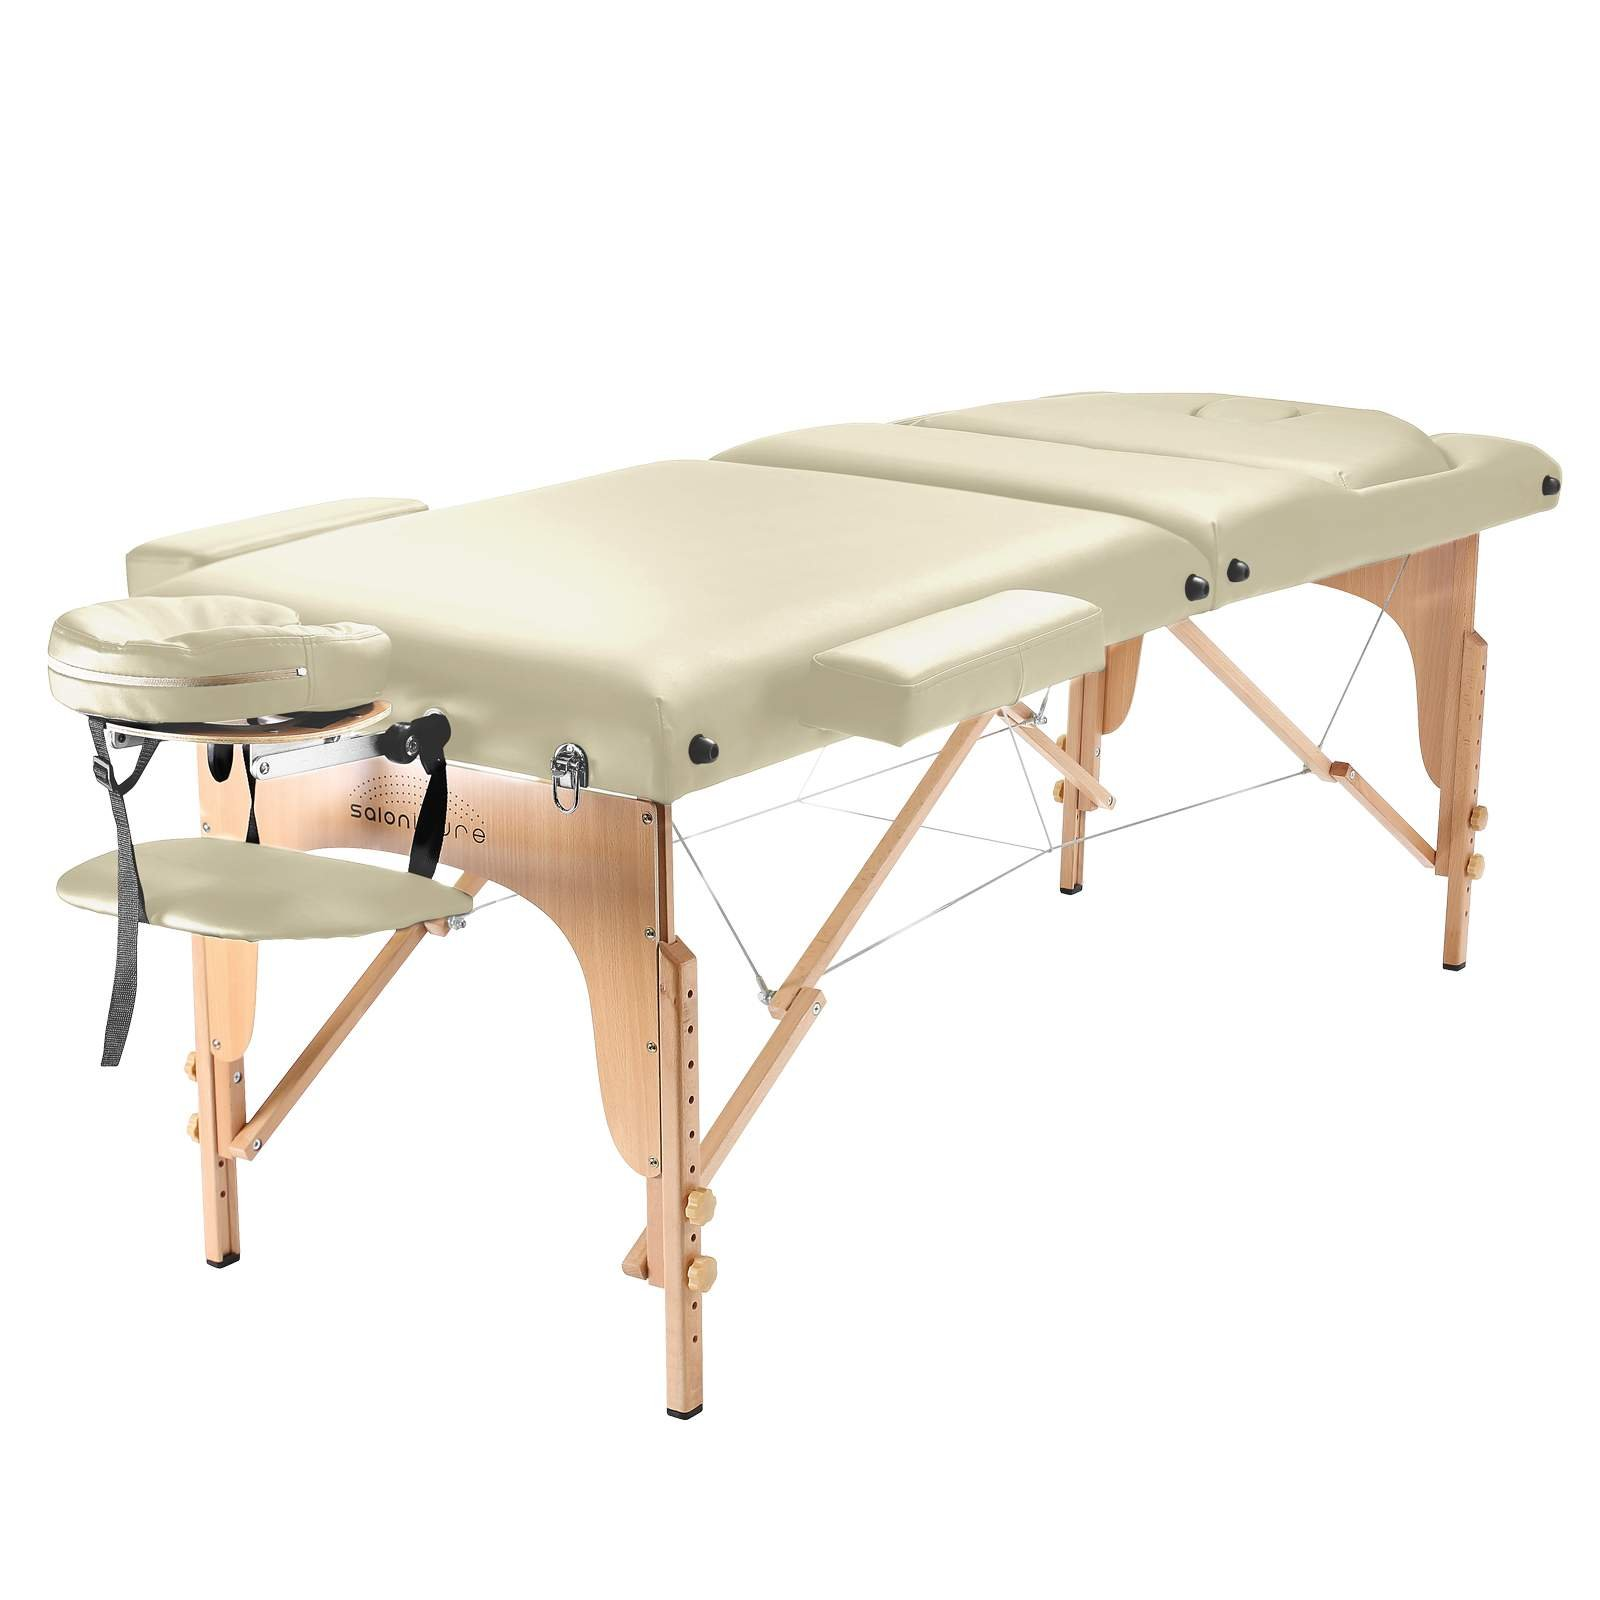 Saloniture Professional Portable Massage Table with Backrest - Cream by Saloniture (Image #2)